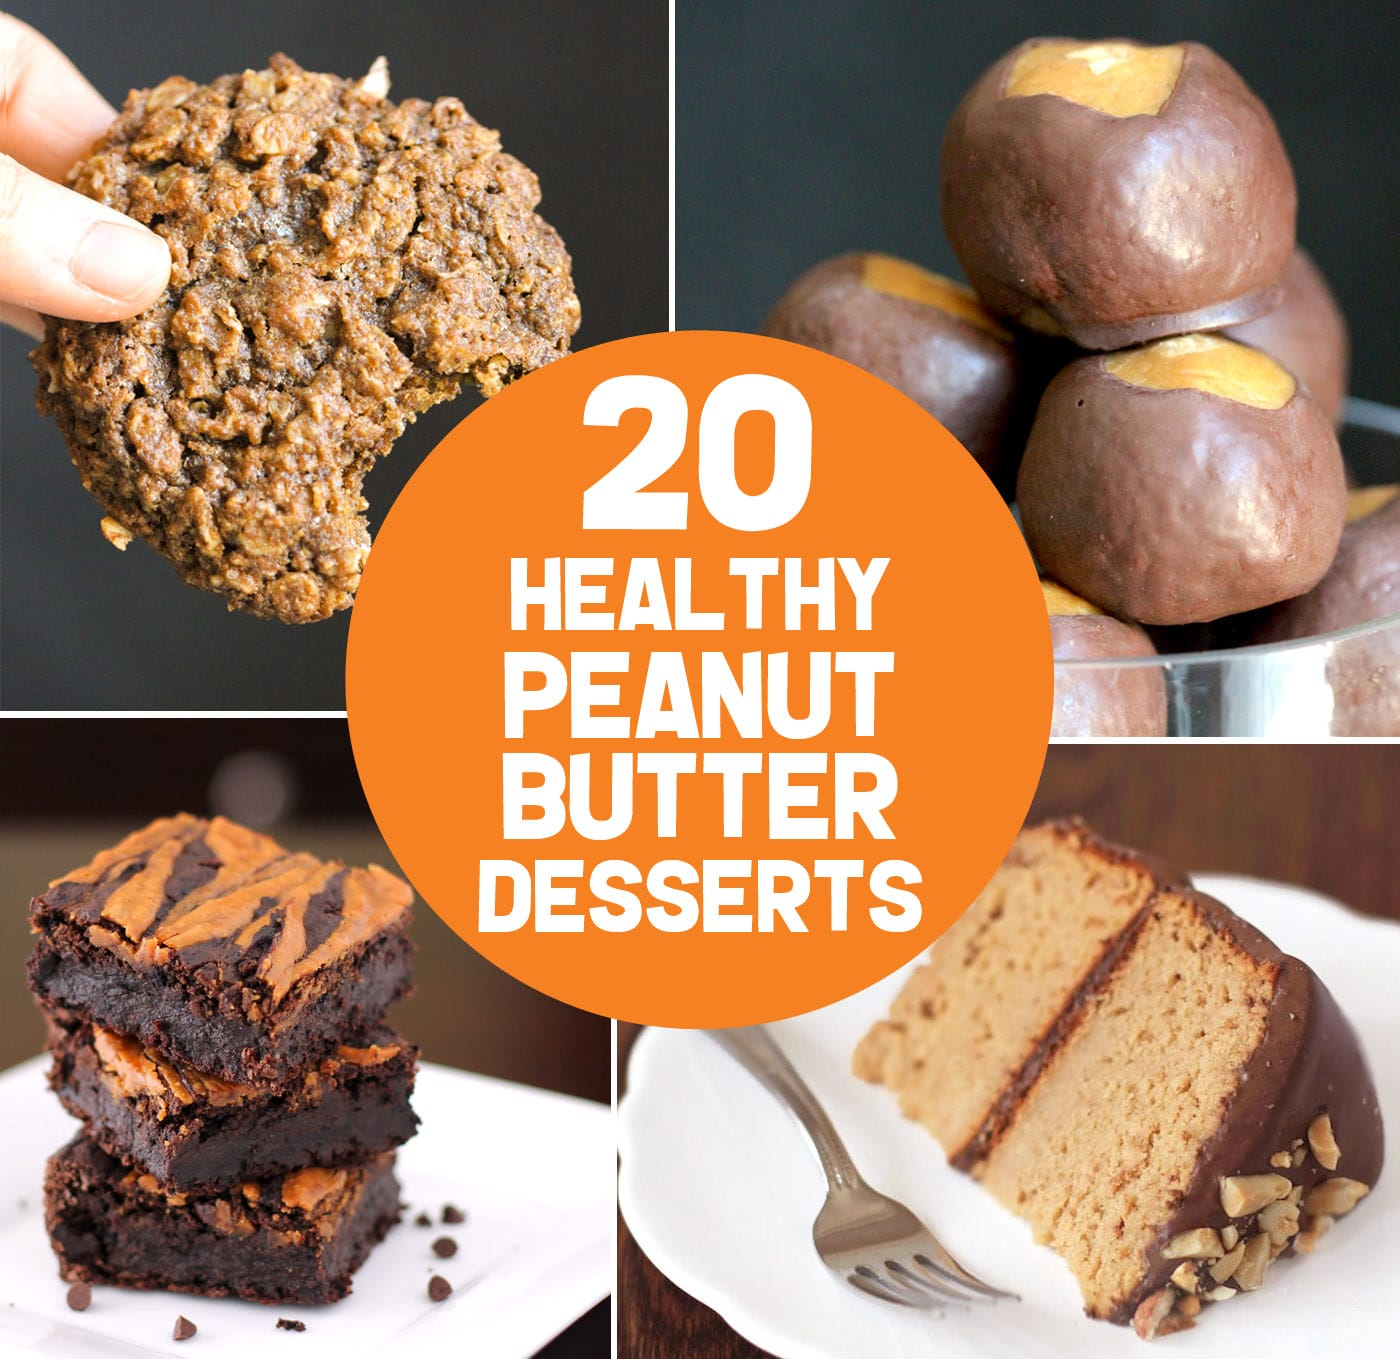 Let the peanut butter lover inside you go ham with these 20 healthy peanut butter dessert recipes! From chewy peanut butter cookies to fluffy peanut butter mousse, from peanut butter cake to buckeye balls, and more. There are options for everyone, with sugar free, low carb, low fat, high protein, high fiber, gluten free, dairy free, vegan, and keto recipes! #glutenfreedessert #lowcarbdessert #ketodessert #highprotein #healthycake #glutenfreecake #sugarfreecake #veganbrownies #ketofudge #fatbombs